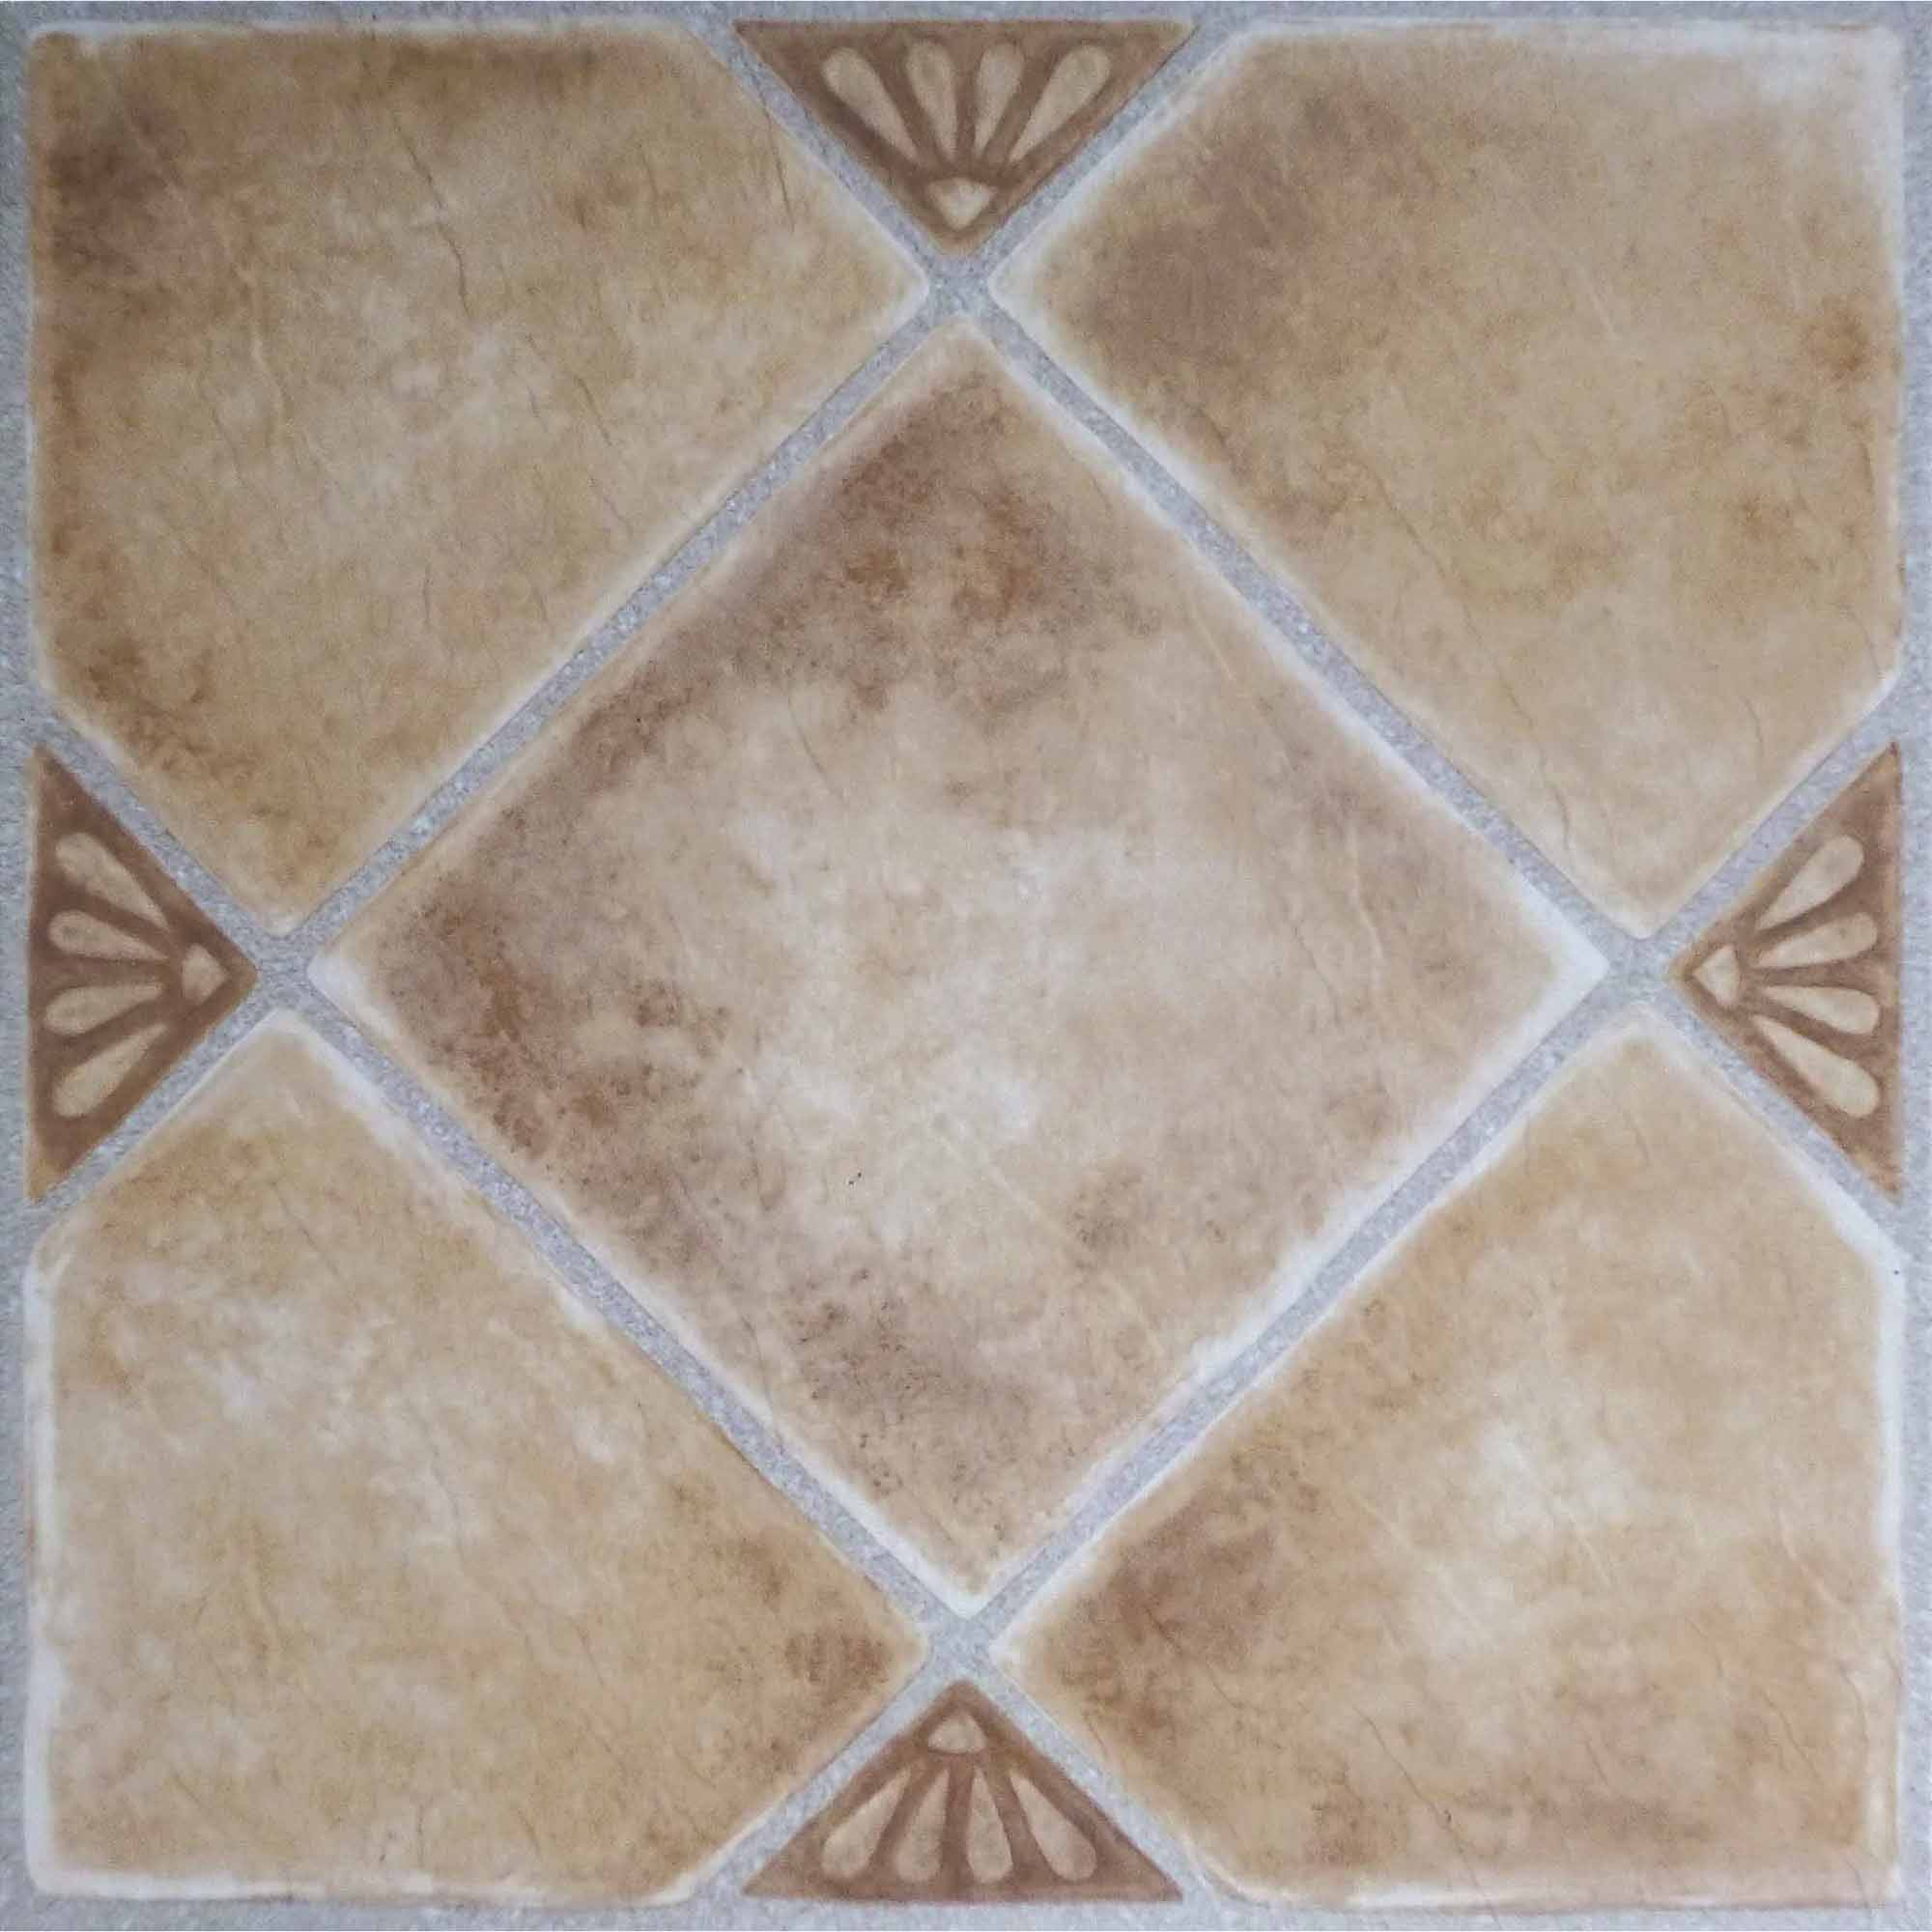 Nexus beige clay diamond with accents 12x12 self adhesive vinyl nexus beige clay diamond with accents 12x12 self adhesive vinyl floor 20 tiles20 sqft walmart dailygadgetfo Image collections